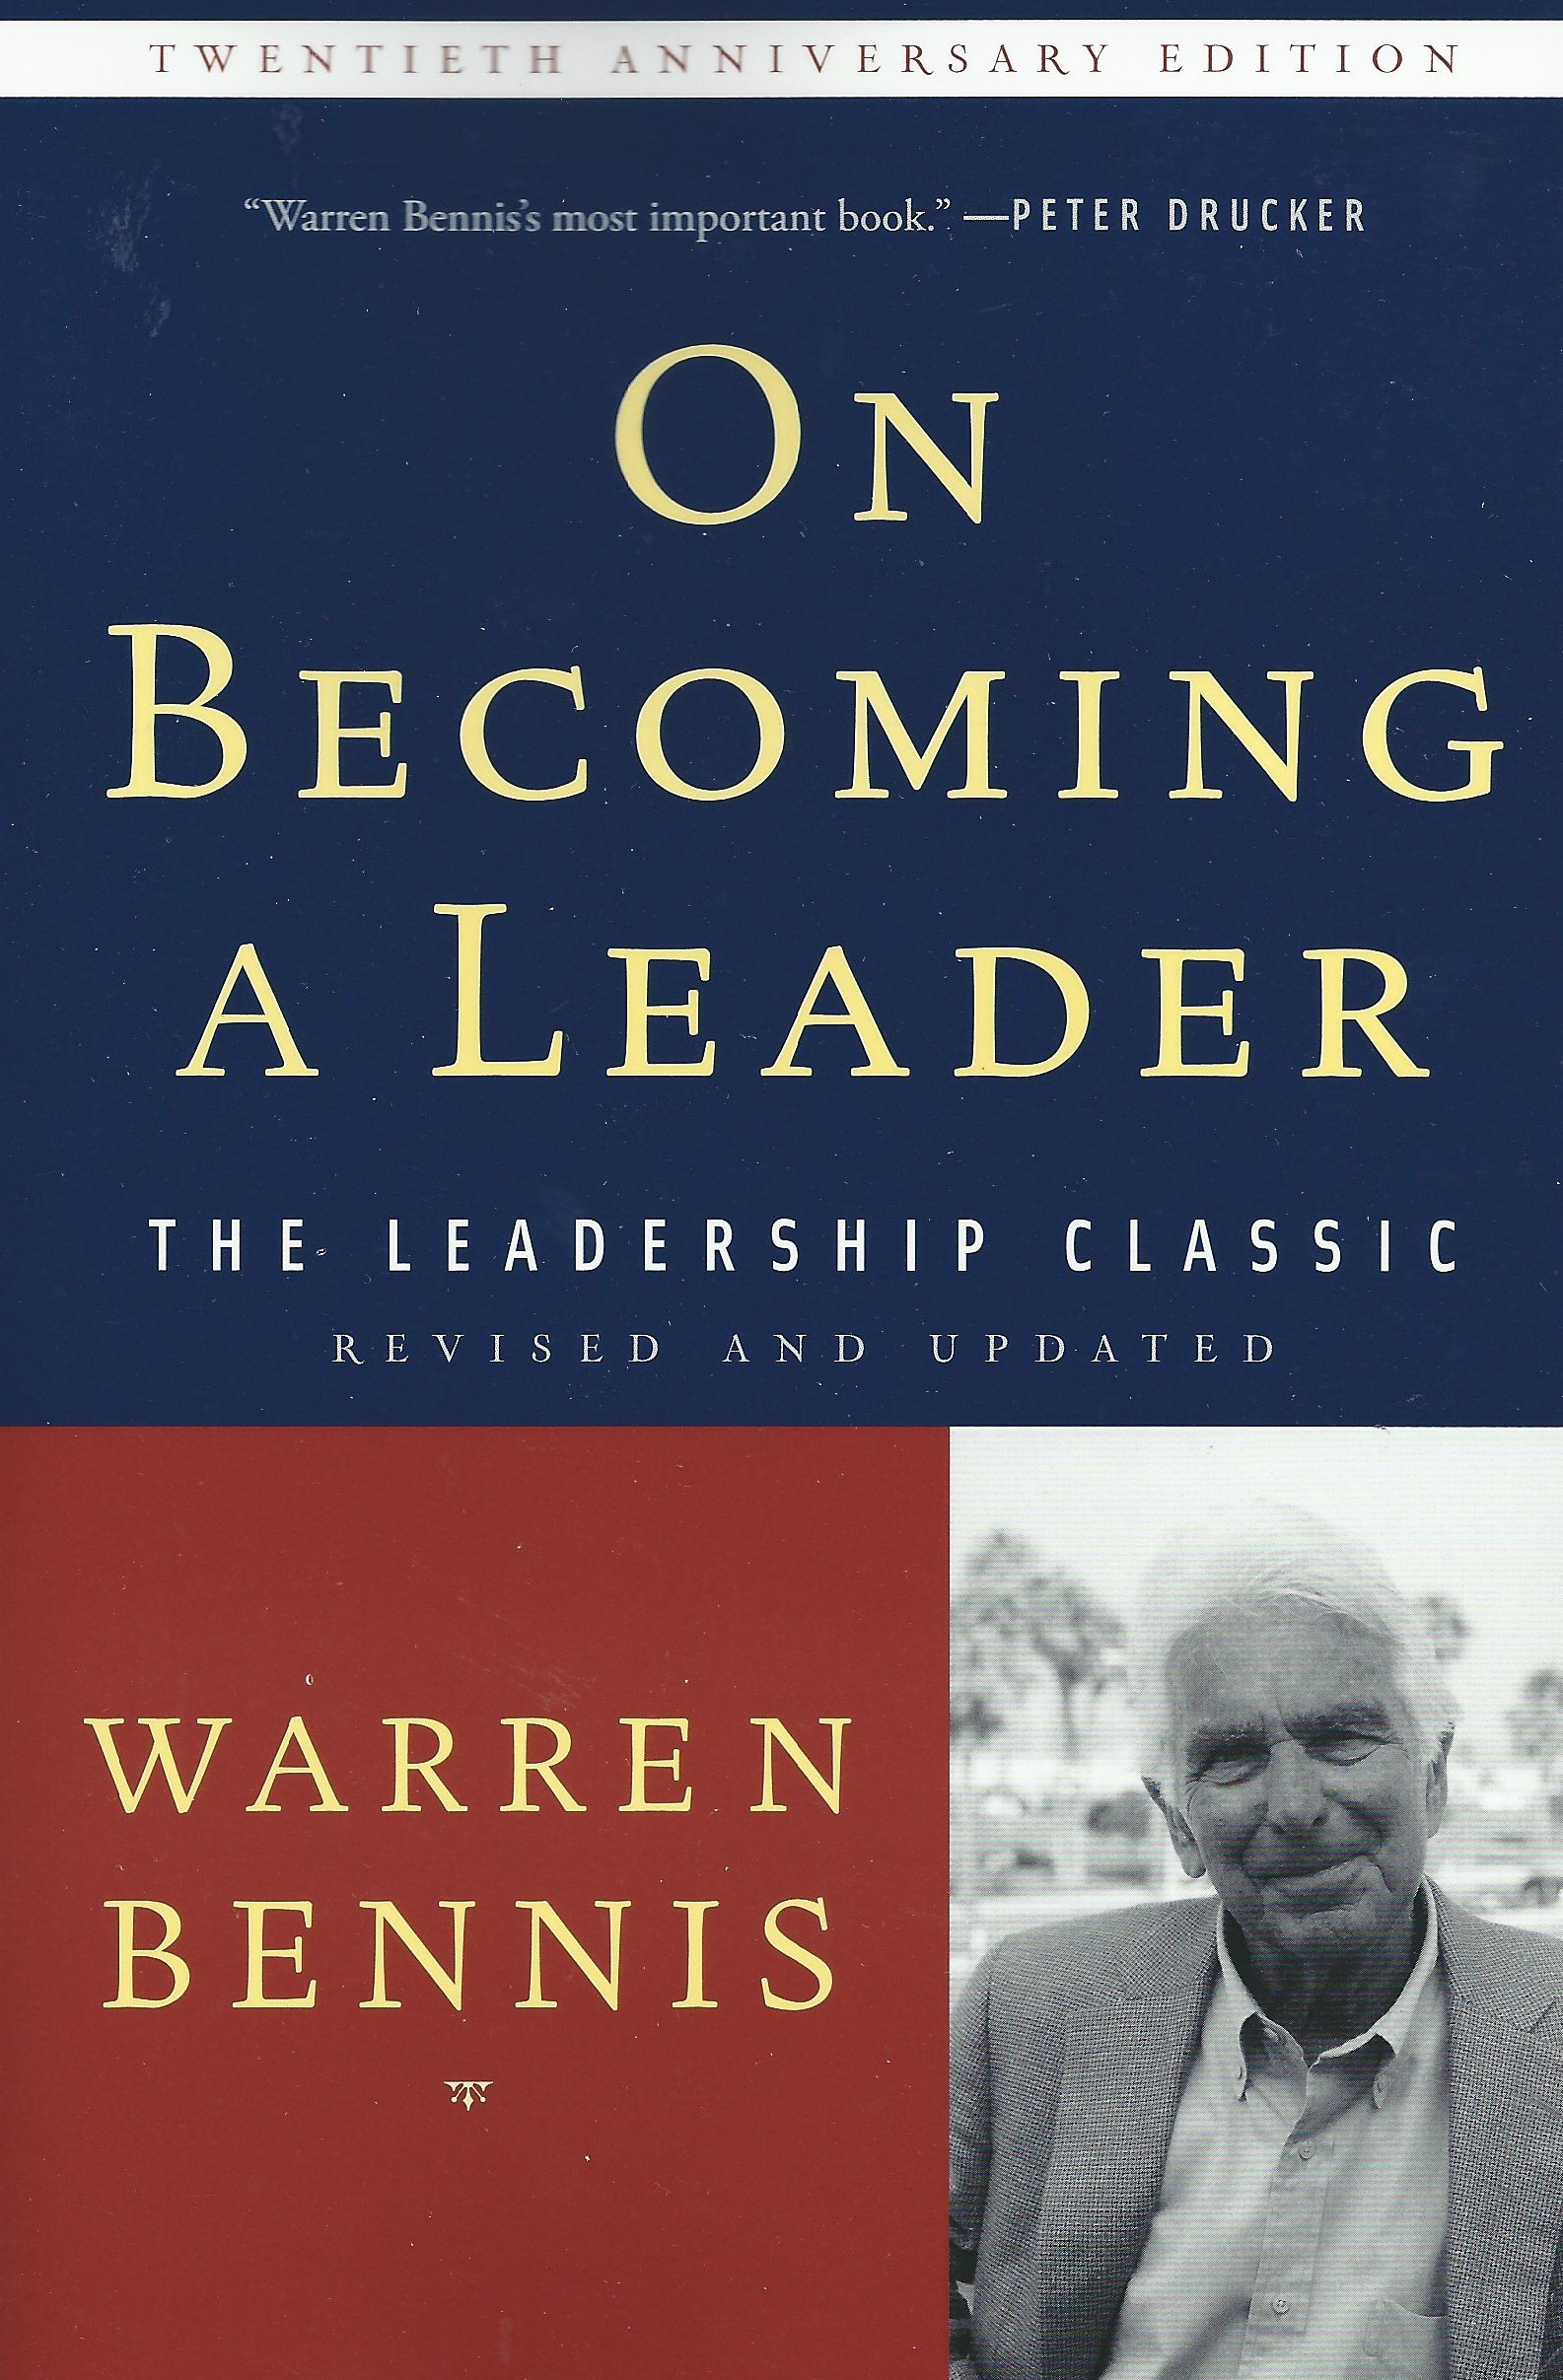 on-becoming-a-leader-cover